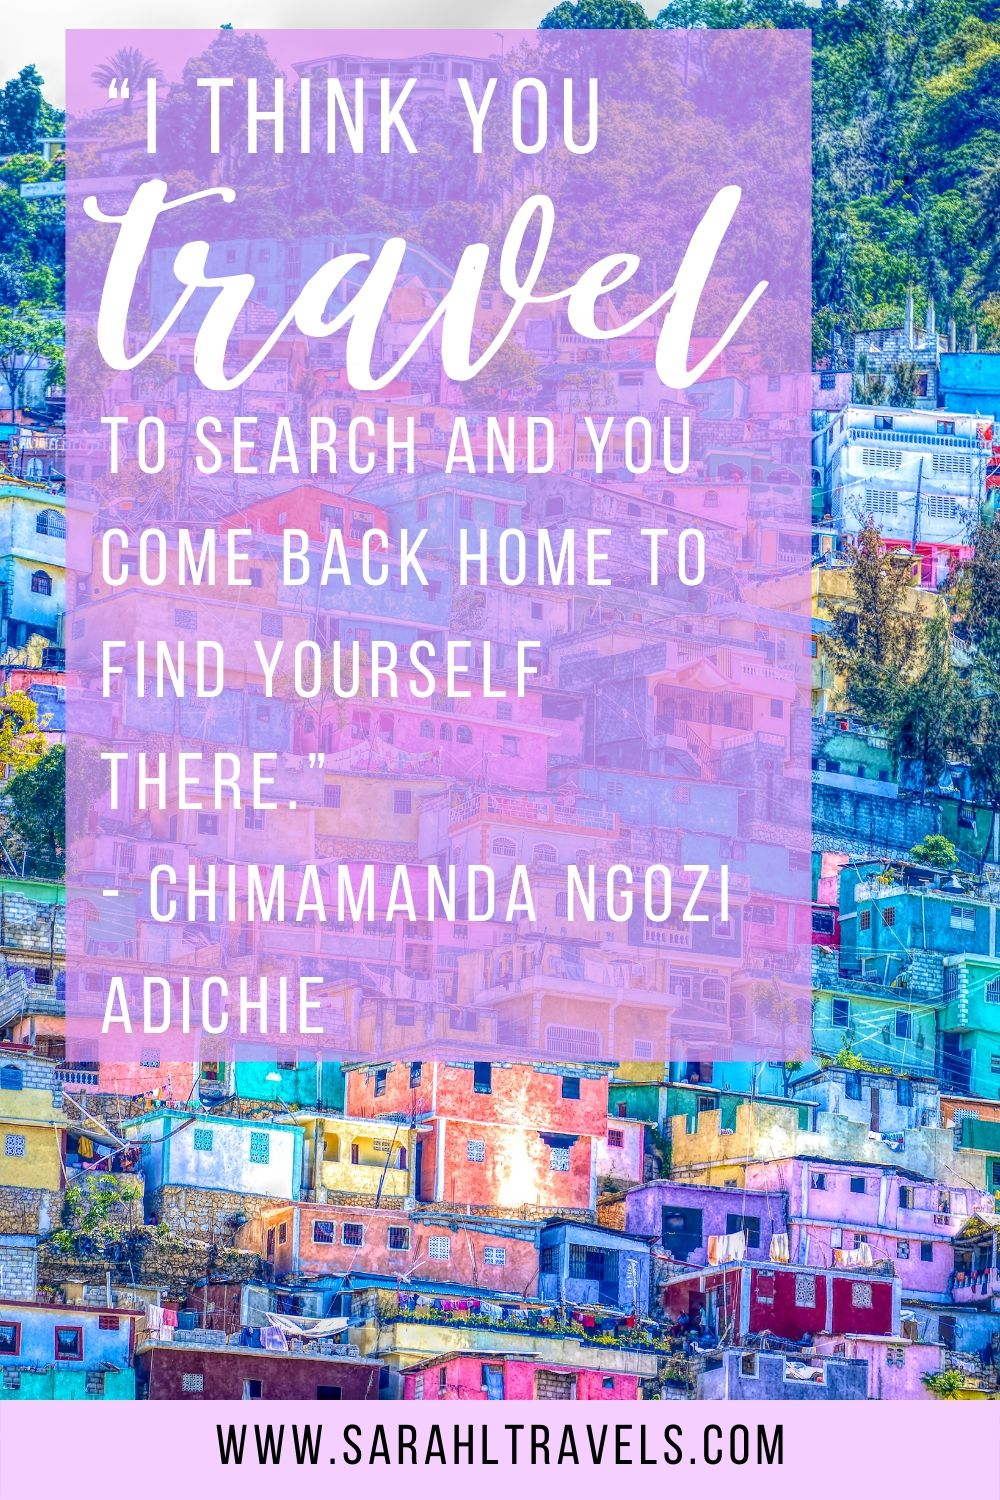 """colorful houses in Haiti with quote """"I think you travel to search and you come back home to find yourself there."""""""